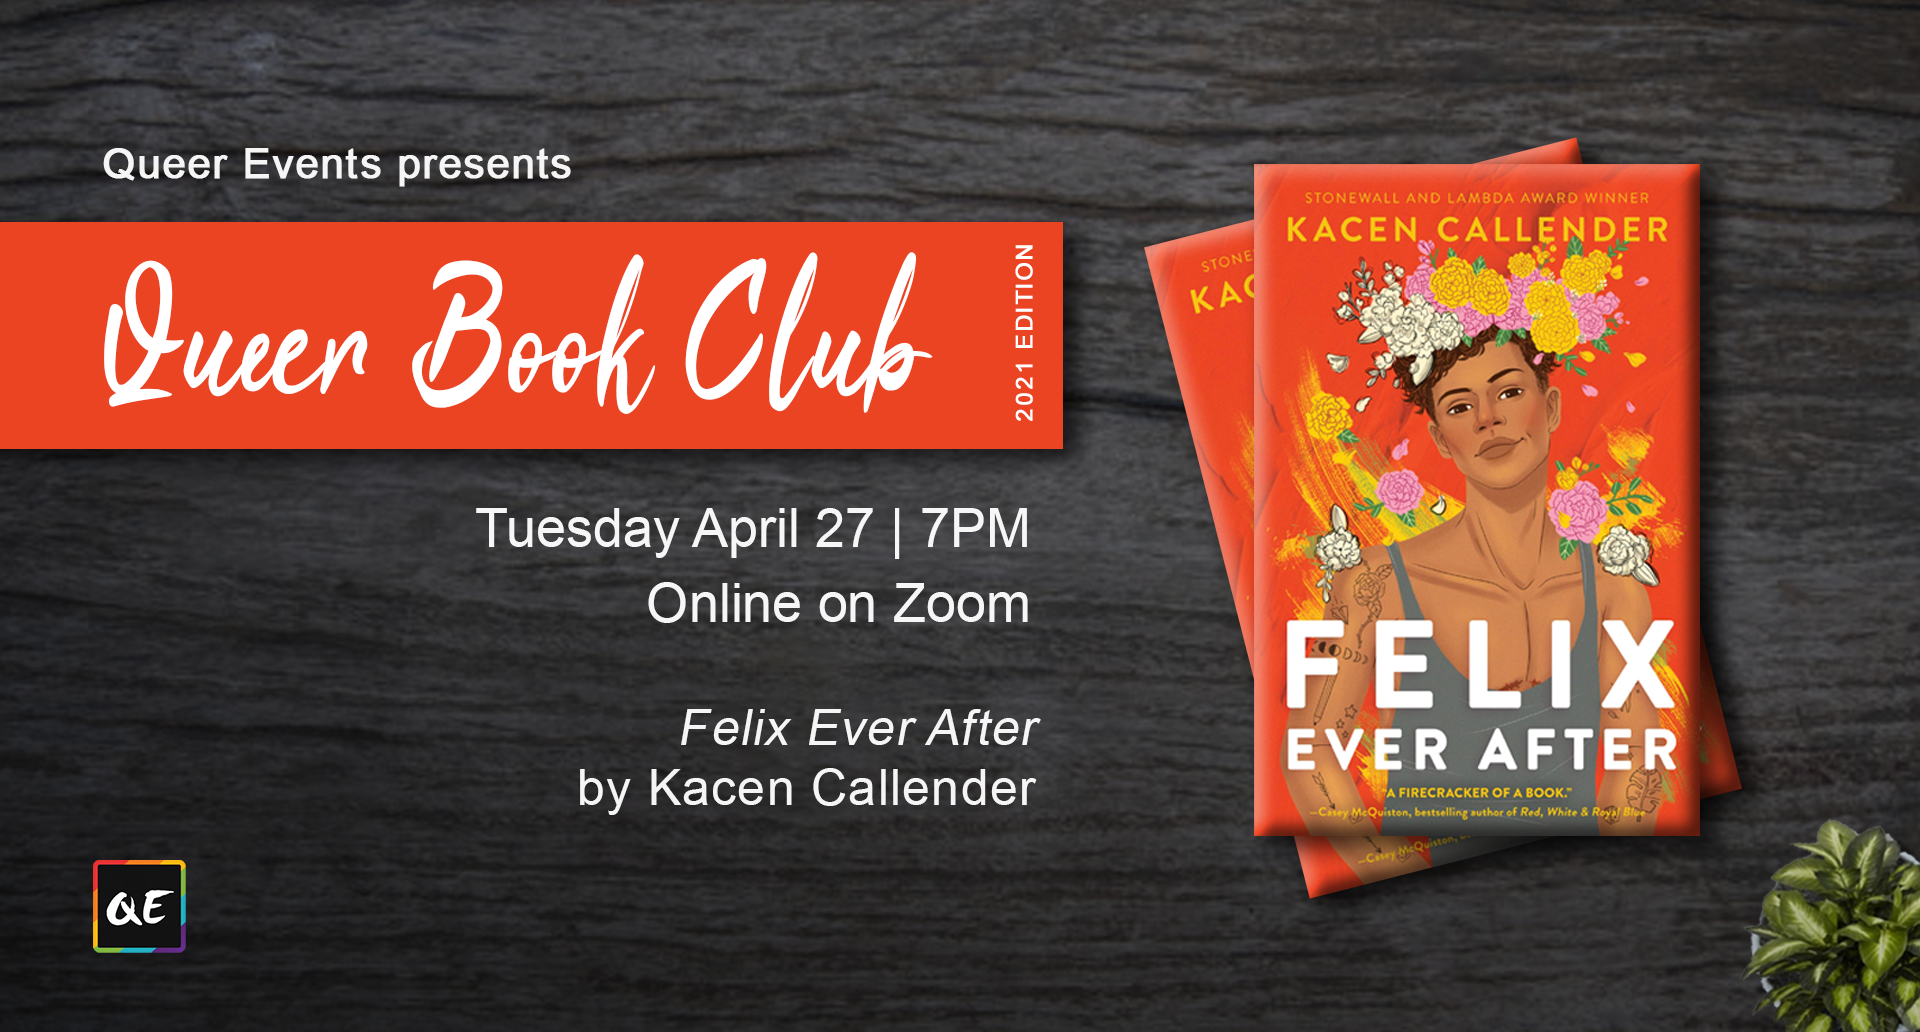 QueerEvents.ca event listing - queer book club april 2021 edition